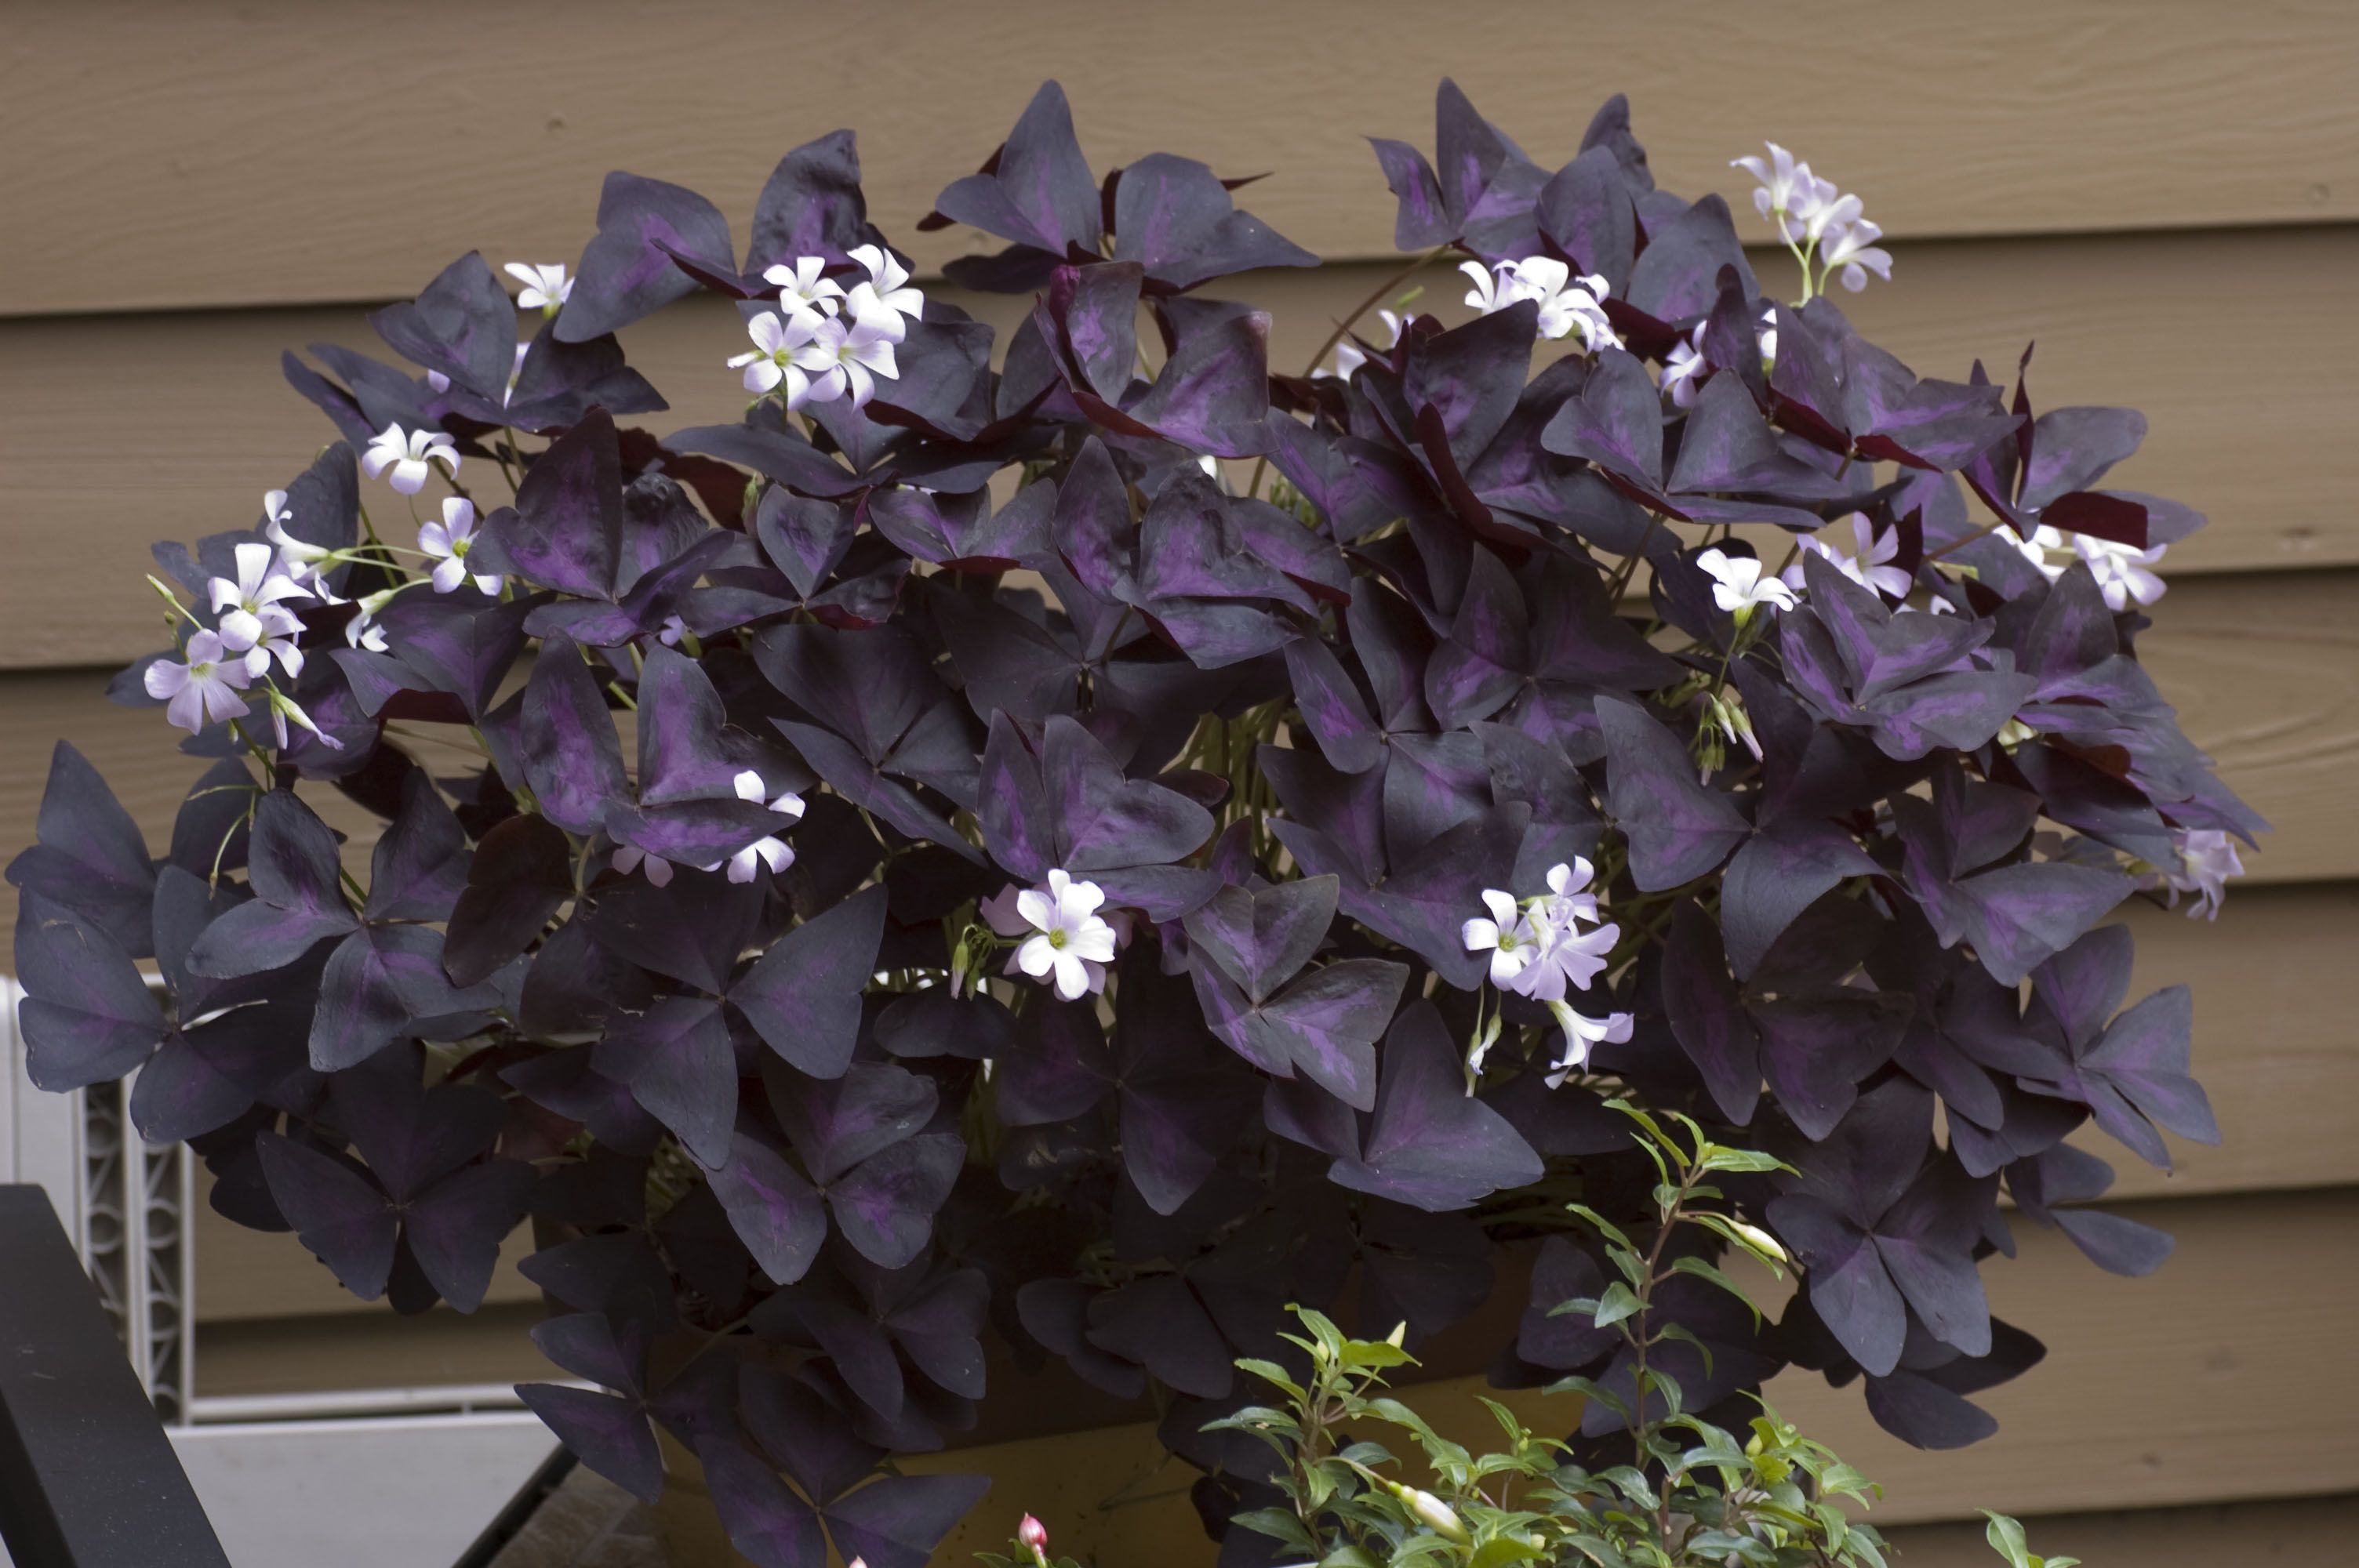 Single planting of purple leaf oxalis garden container gardening oxalis purple leaf shamrock wood sorrel flowering plants are low growing foliage garden plant also for attractive indoor plant best flowering houseplants mightylinksfo Gallery